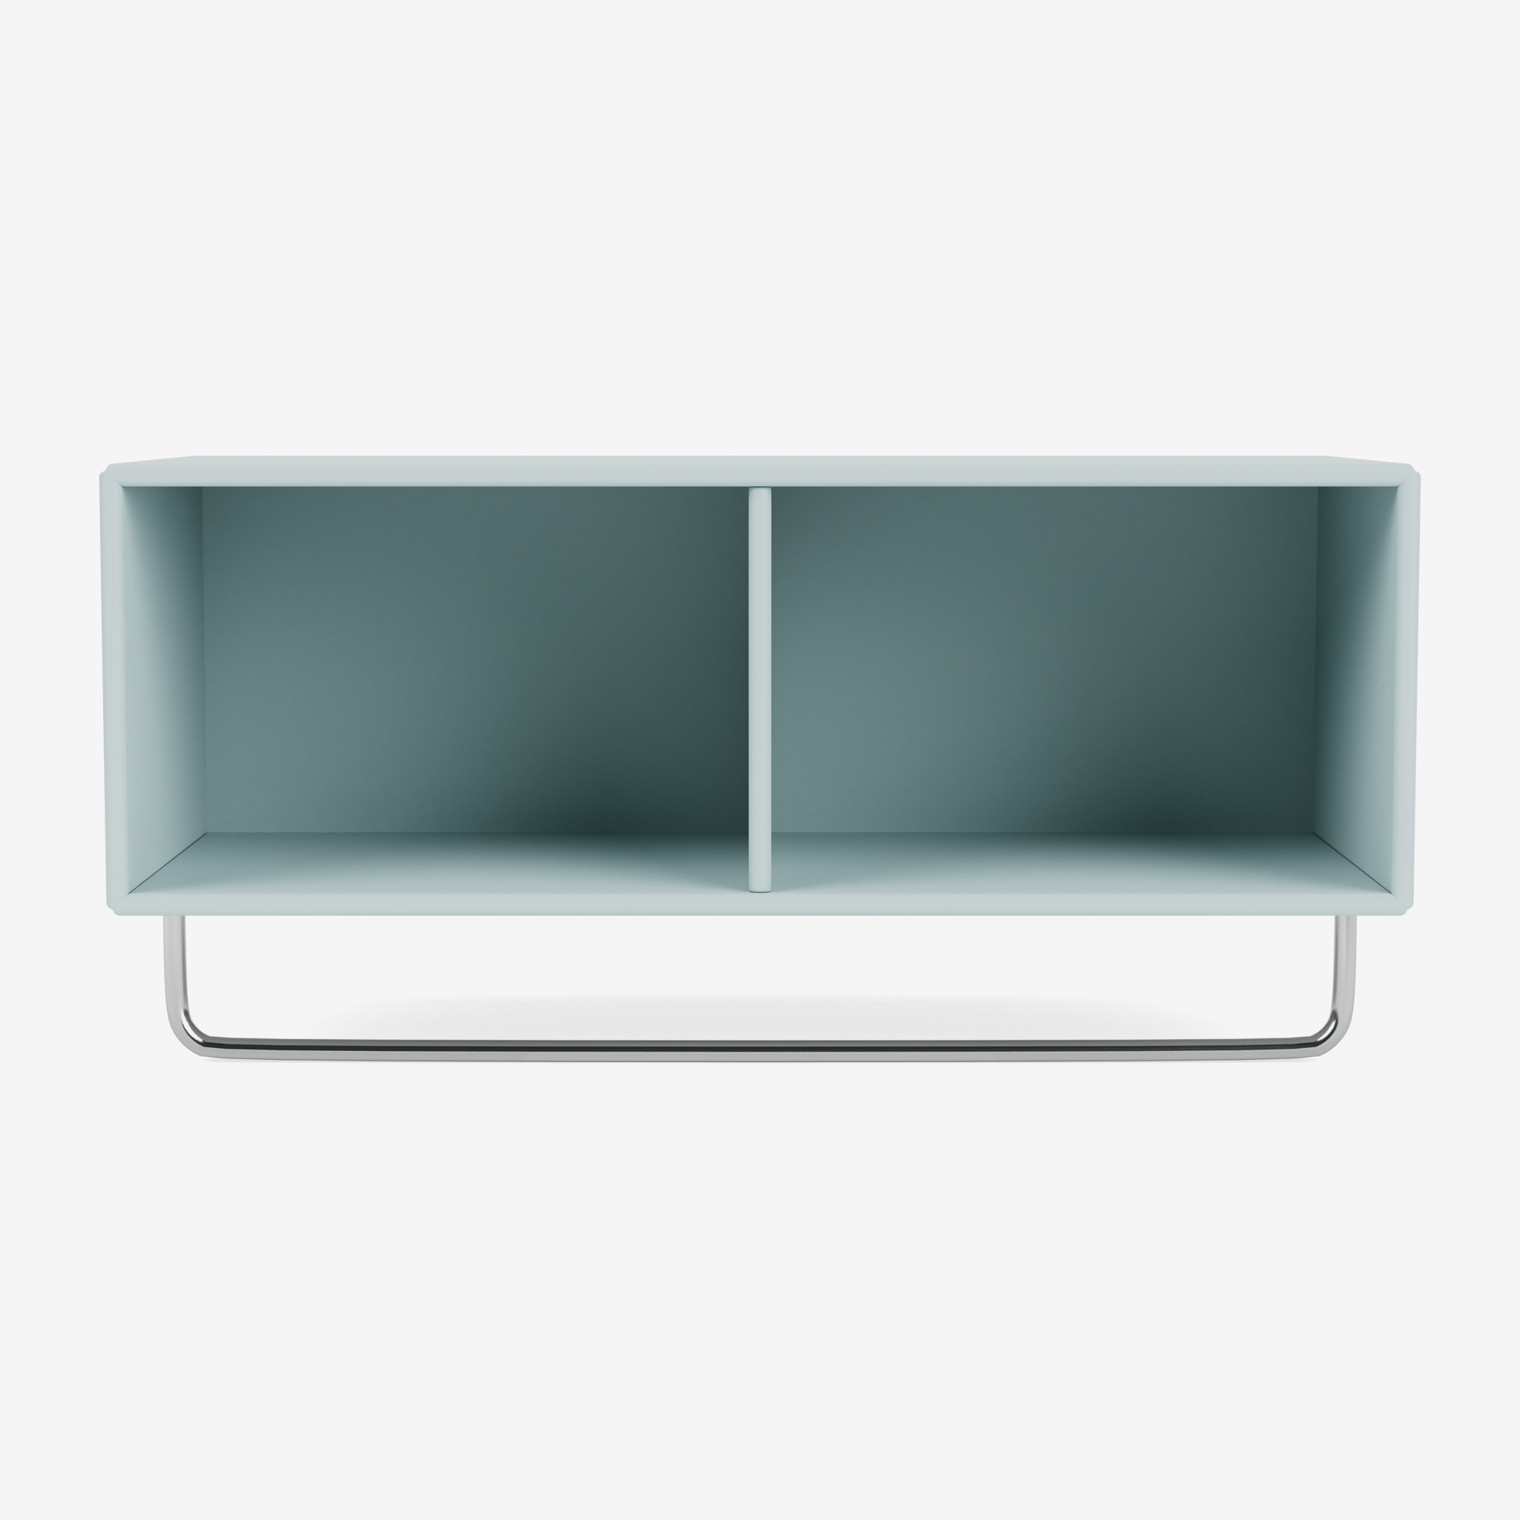 COAT shelf with clothes rack